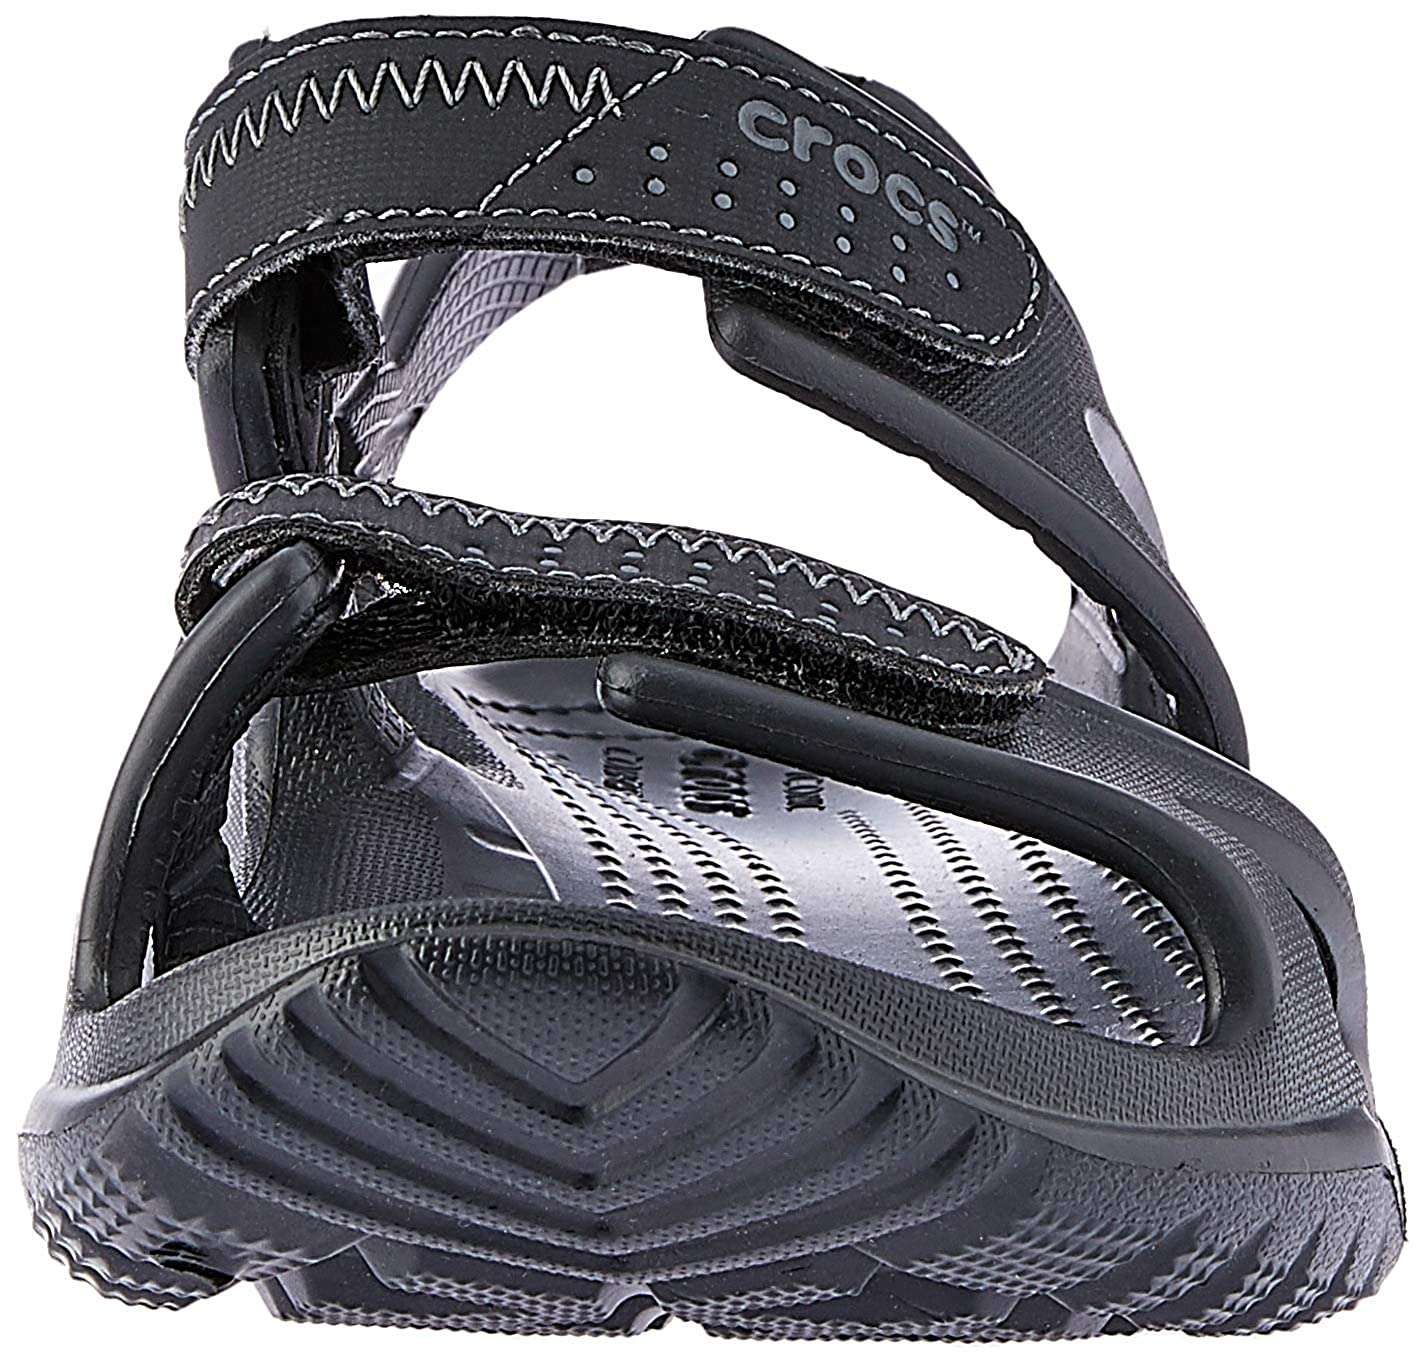 Crocs Swiftwater River Sandals 203965-06 Sandali alla Schiava Uomo